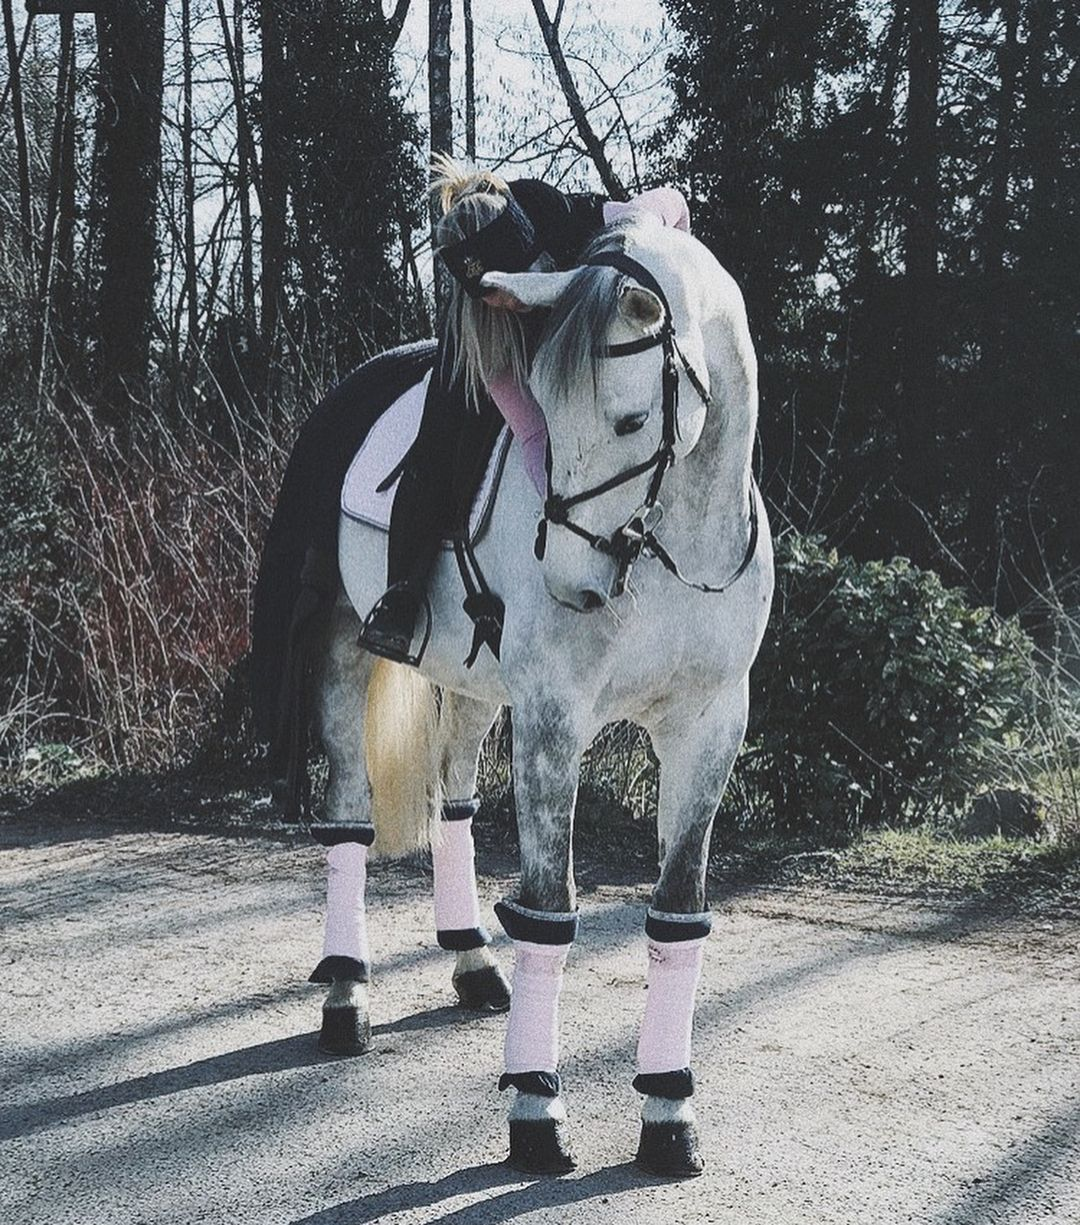 Equipement Equitation Rose Cheval Gris Photographie Equestre Image Cheval